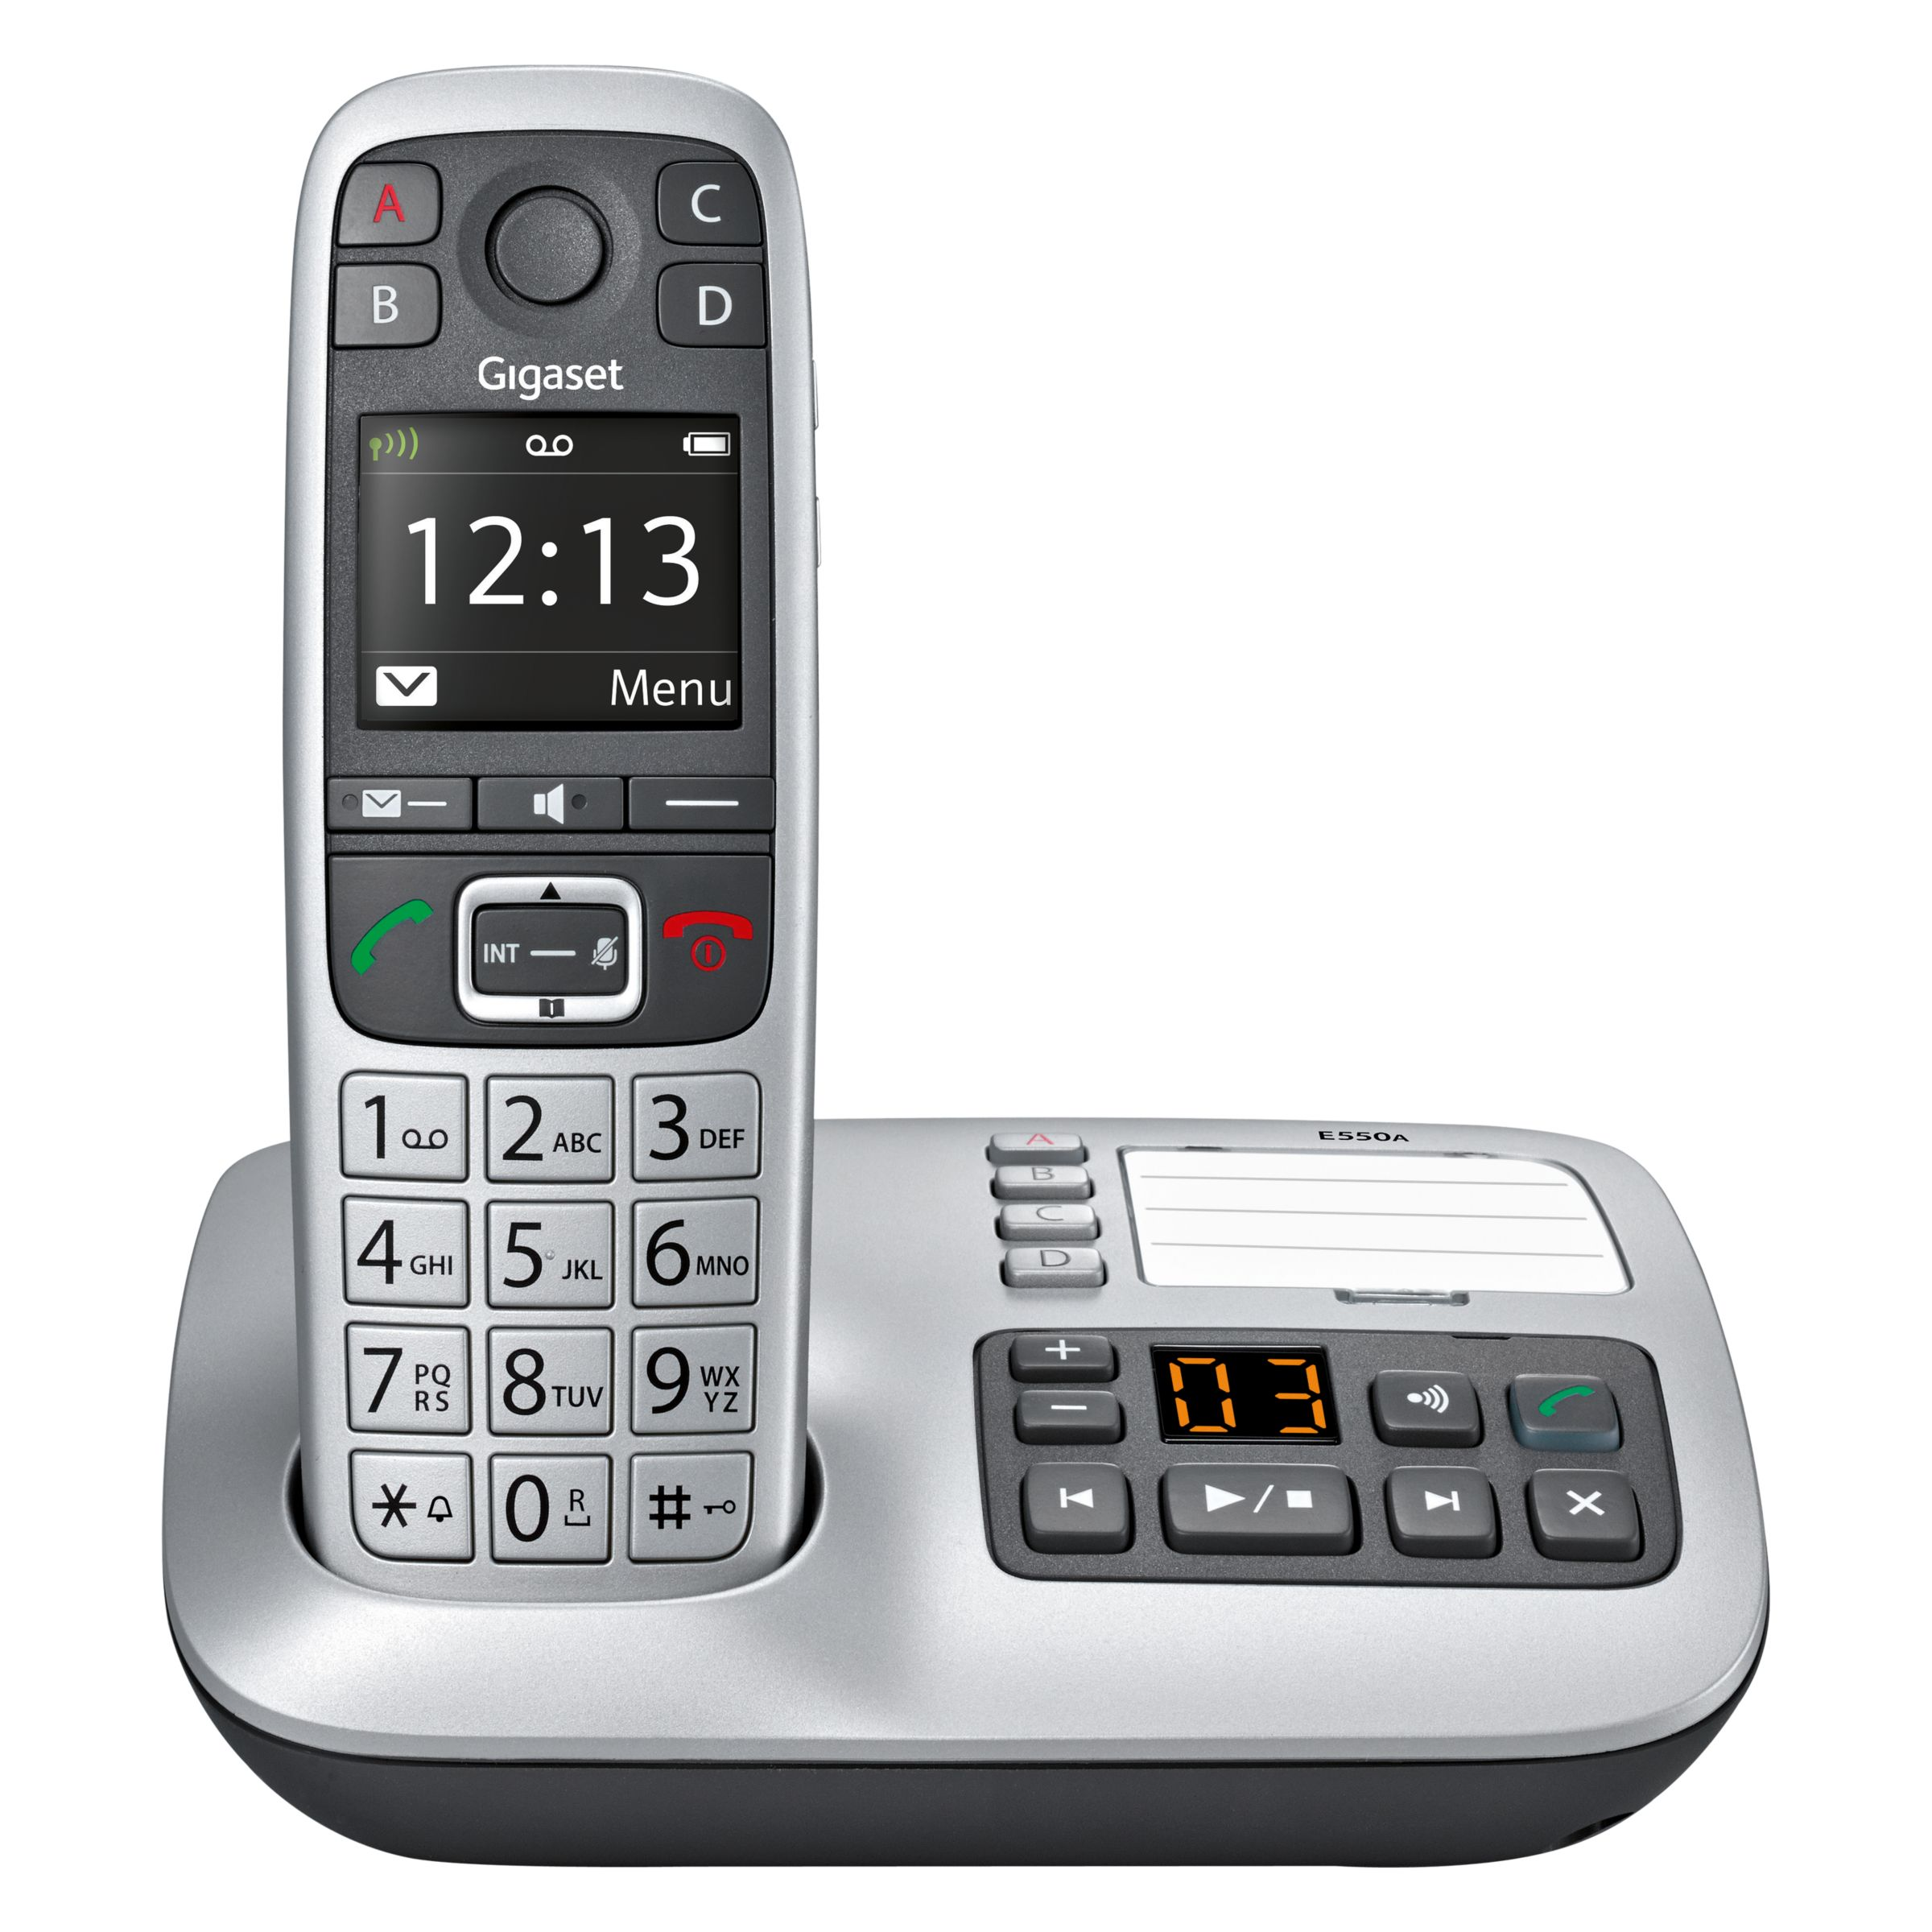 Gigaset Gigaset E550A Digital Cordless Telephone with Optical Call Alert & Answering Machine, Single, Silver